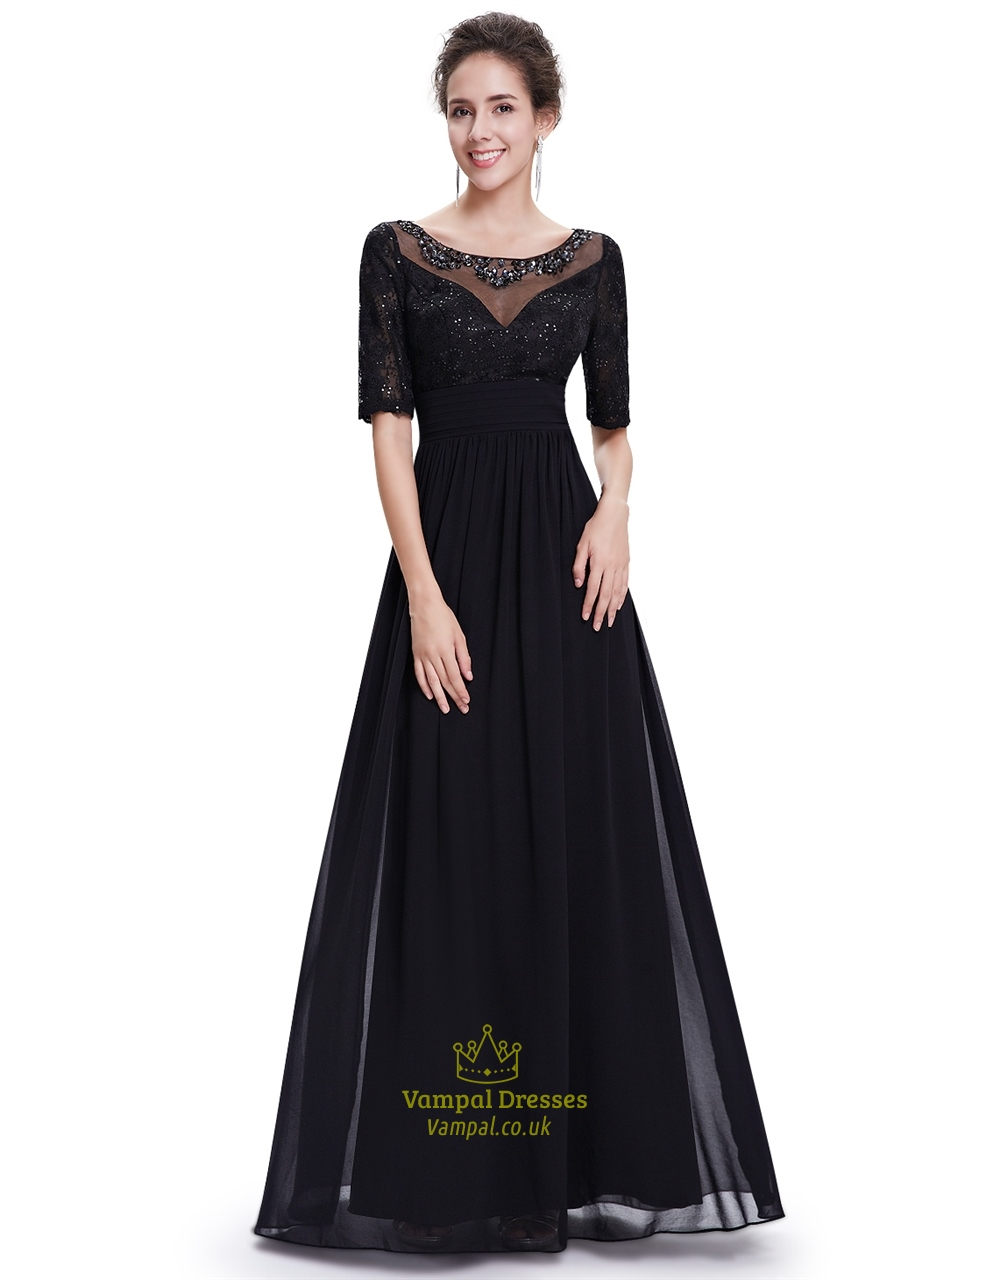 Lulus Exclusive! Make a bold entrance in the Lulus Glow and Behold Black Beaded Maxi Dress! A dazzling array of clear rhinestones and light gold beading dance across a halter neckline and darted bodice (with keyhole), all atop a figure-flaunting, mermaid, maxi skirt/5(17).